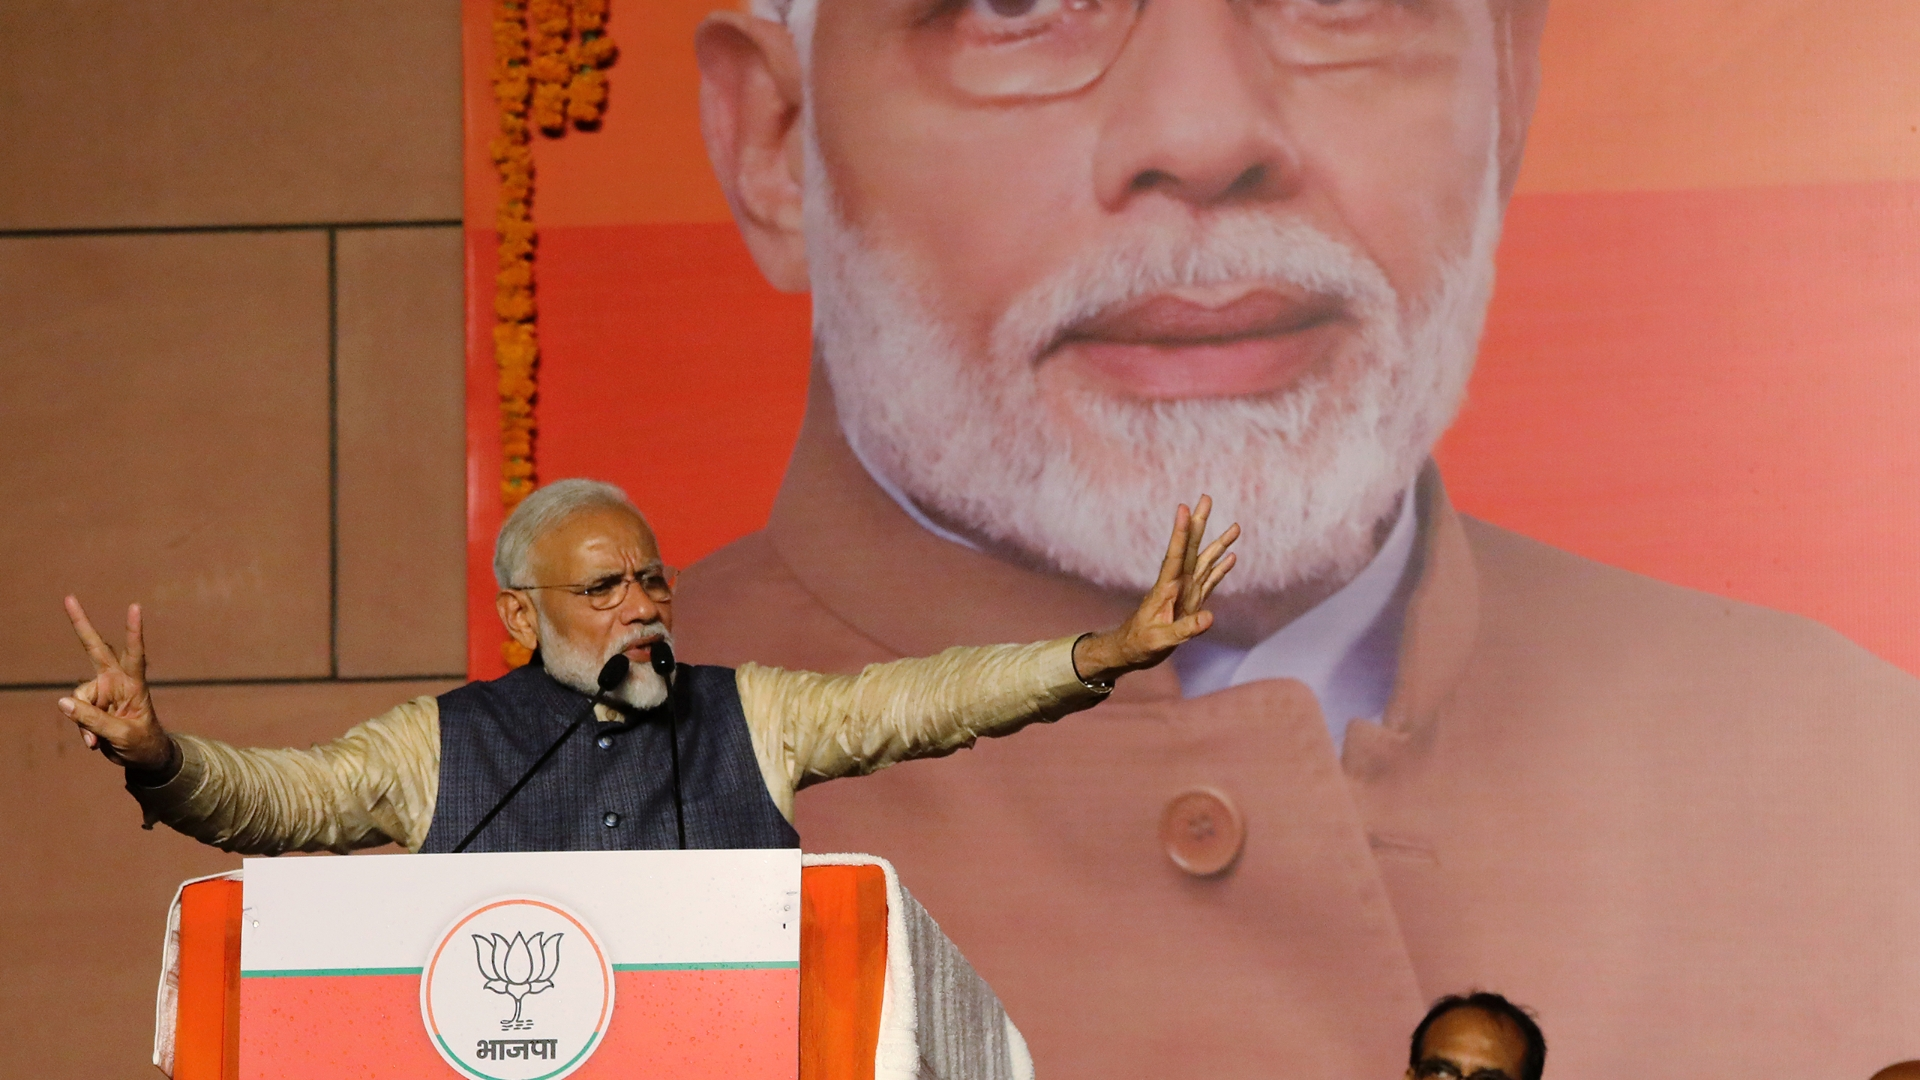 After Modi's stunning win, a grim future for India's opposition